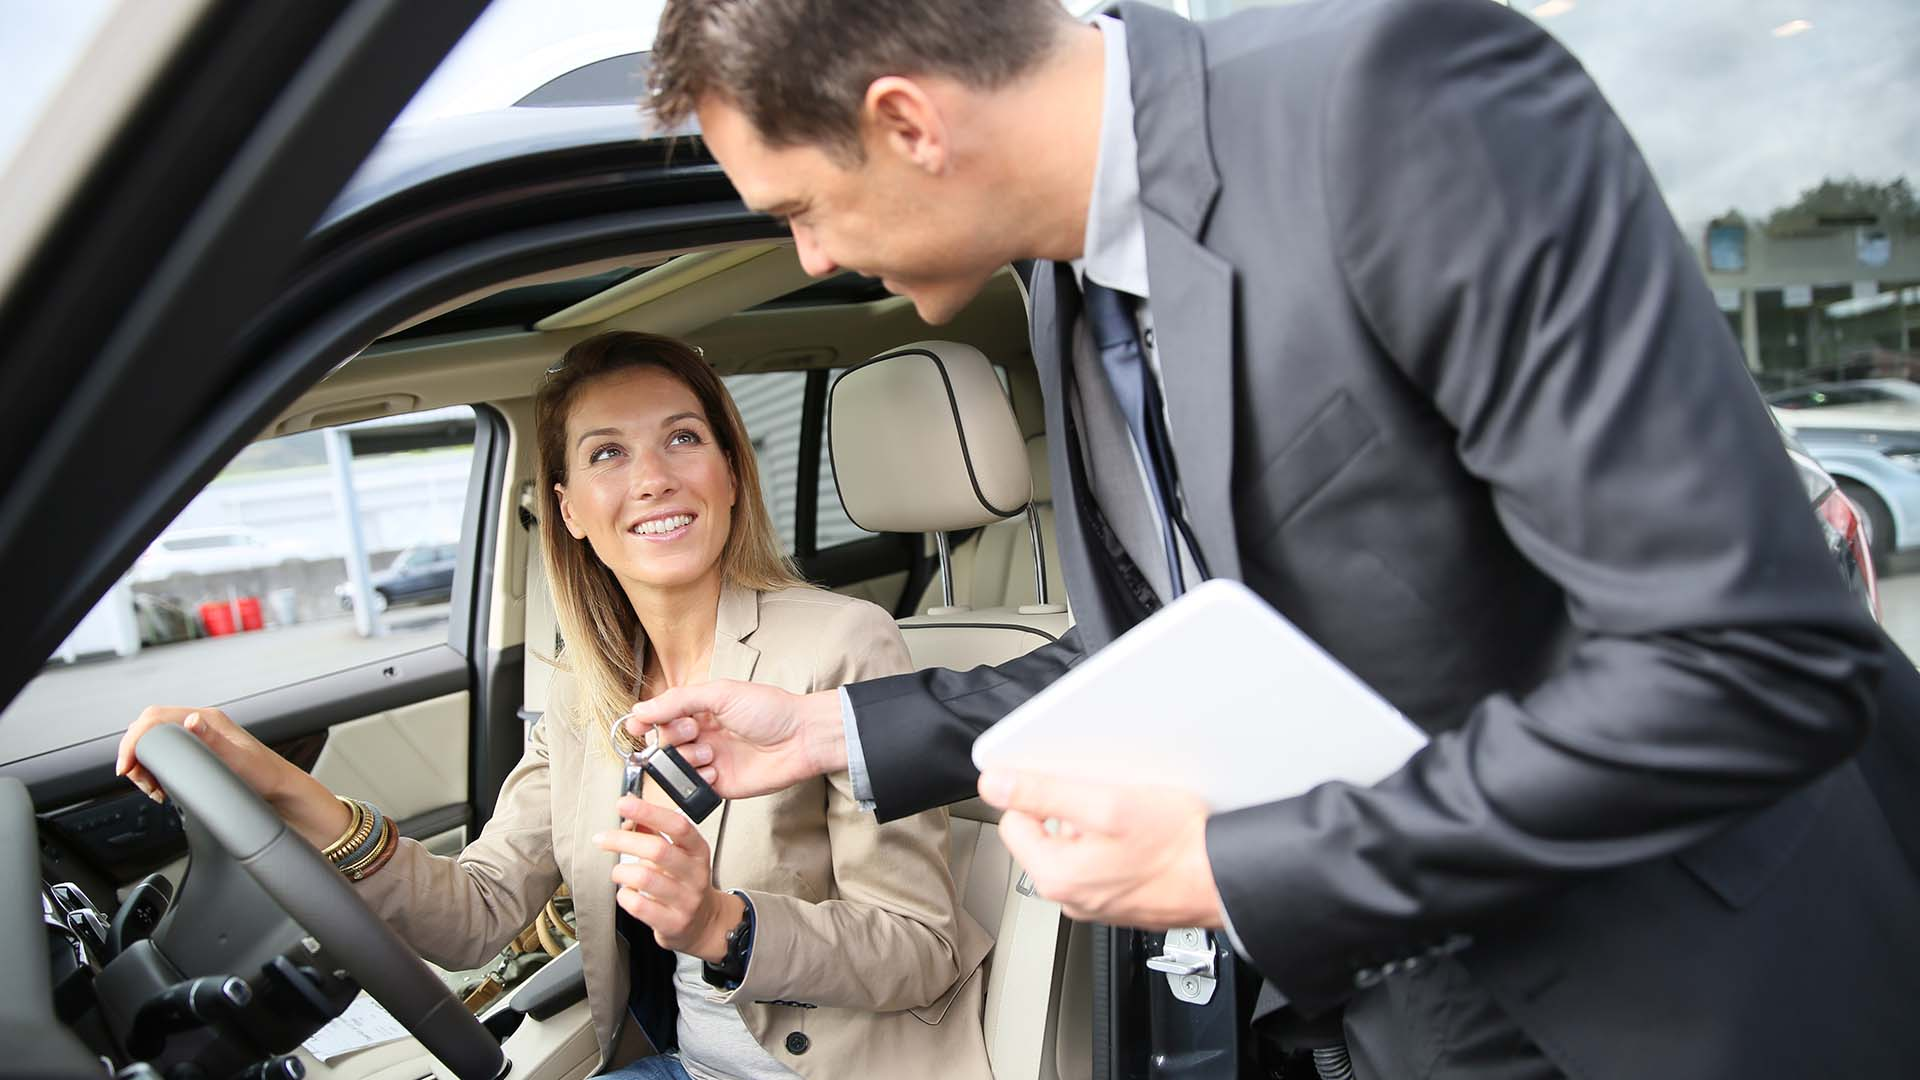 woman receiving cars to a new car at the dealership